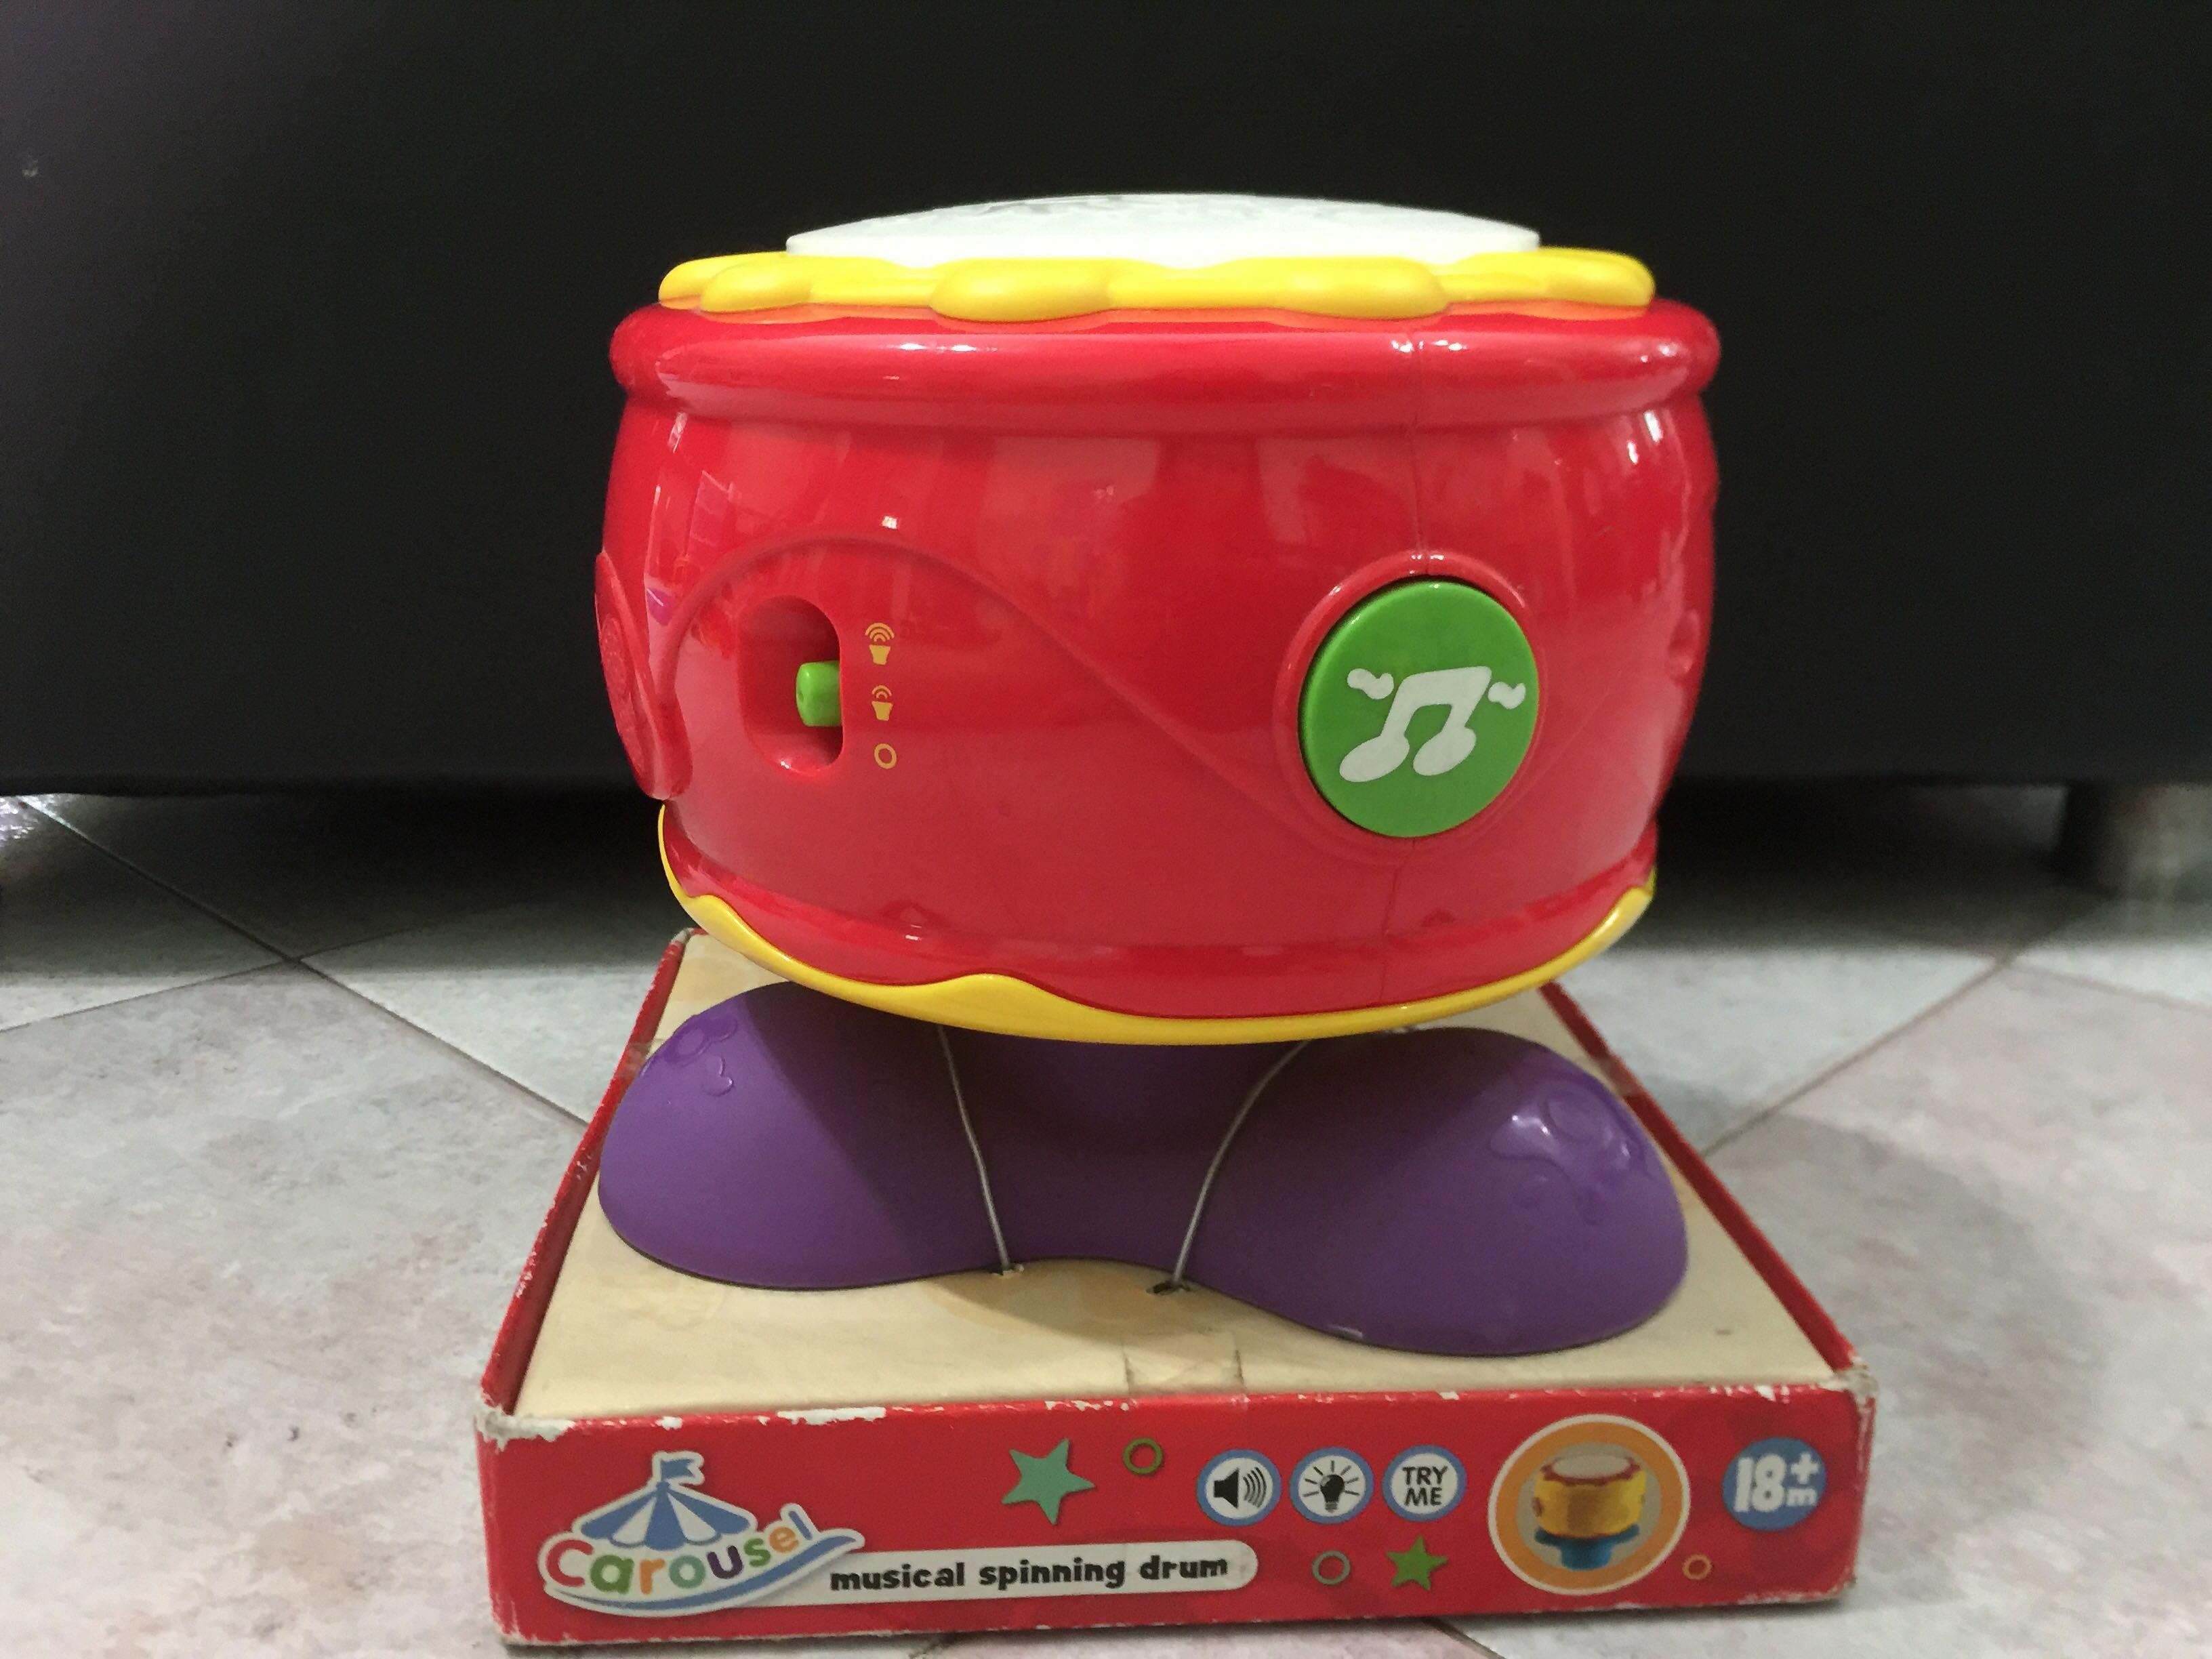 Musical spinning drum